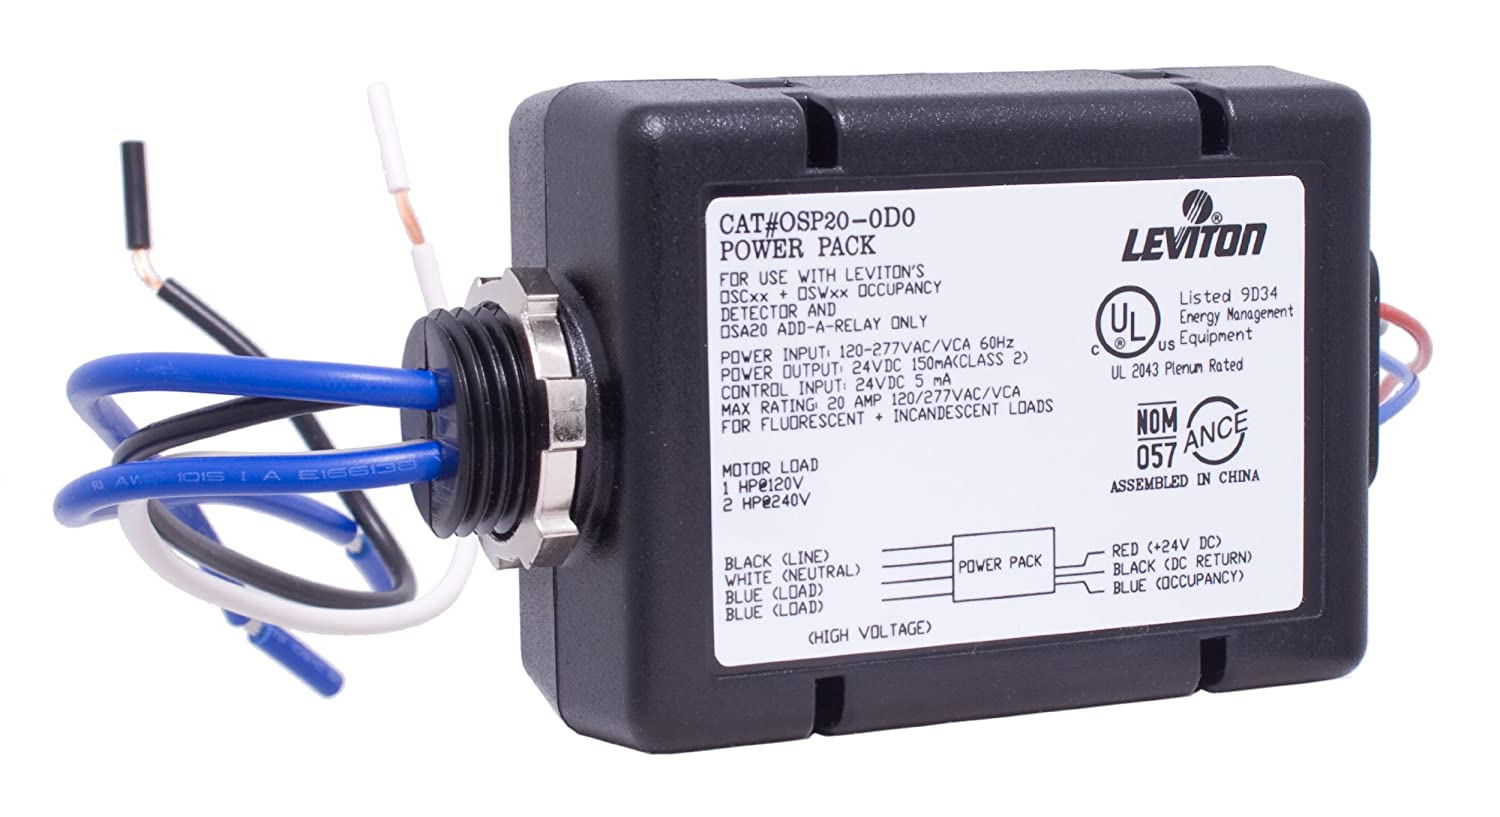 81Cz2ARRDsL._SL1500_ leviton osp20 d0 power pack for occupancy sensor, 20 amp fl inc leviton osc20 m0w wiring diagram at gsmx.co